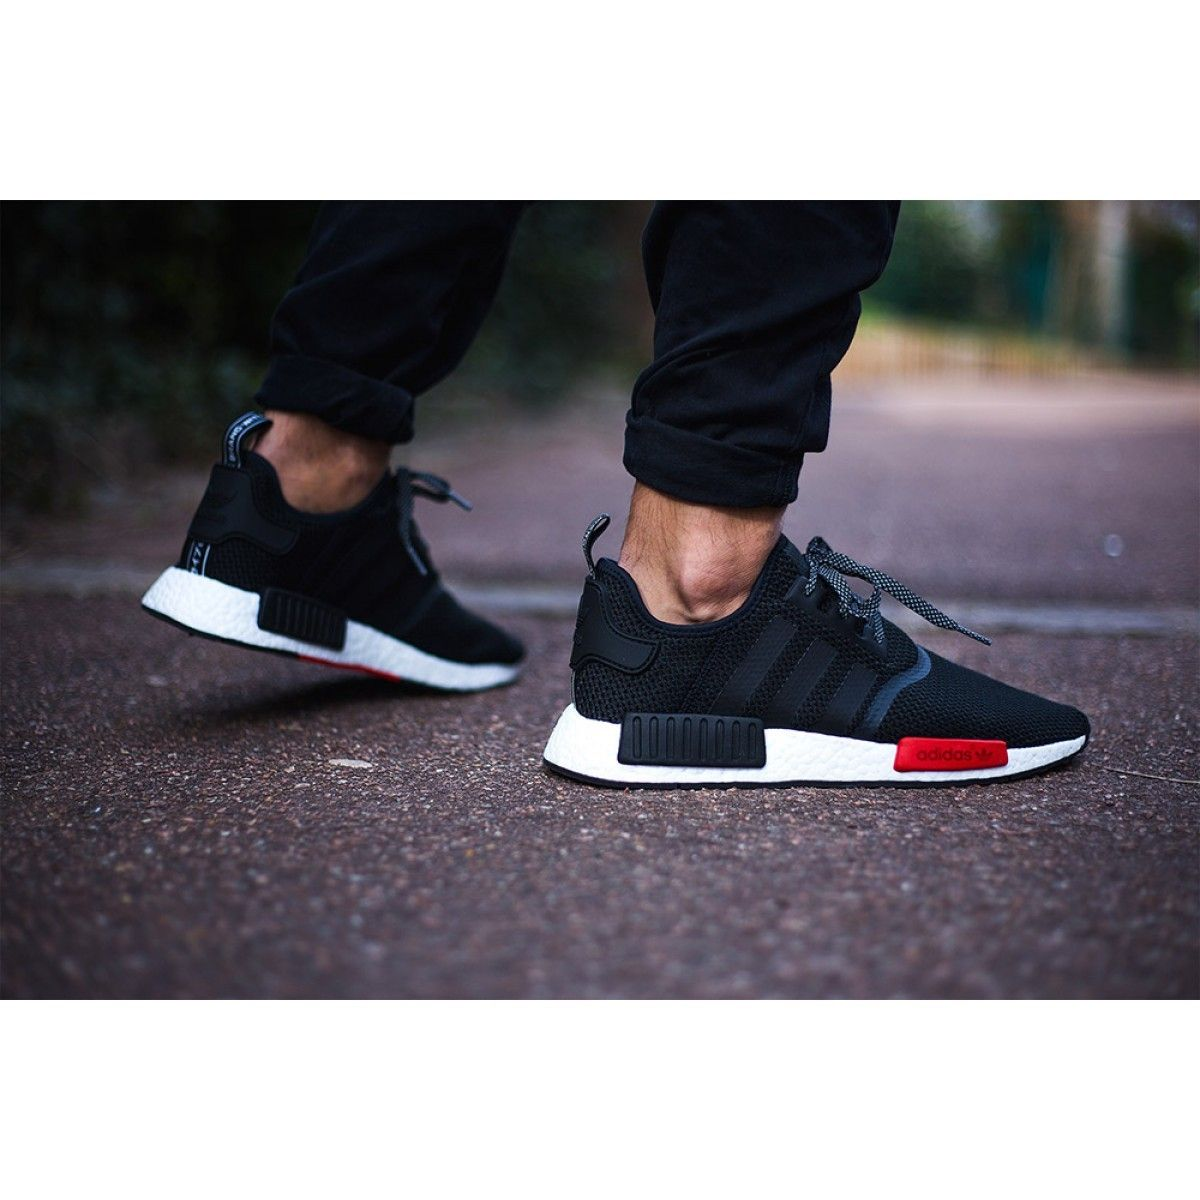 Adidas NMD R1 Footlocker Exclusive Black Red White AQ4498 f366f7dca4f9a